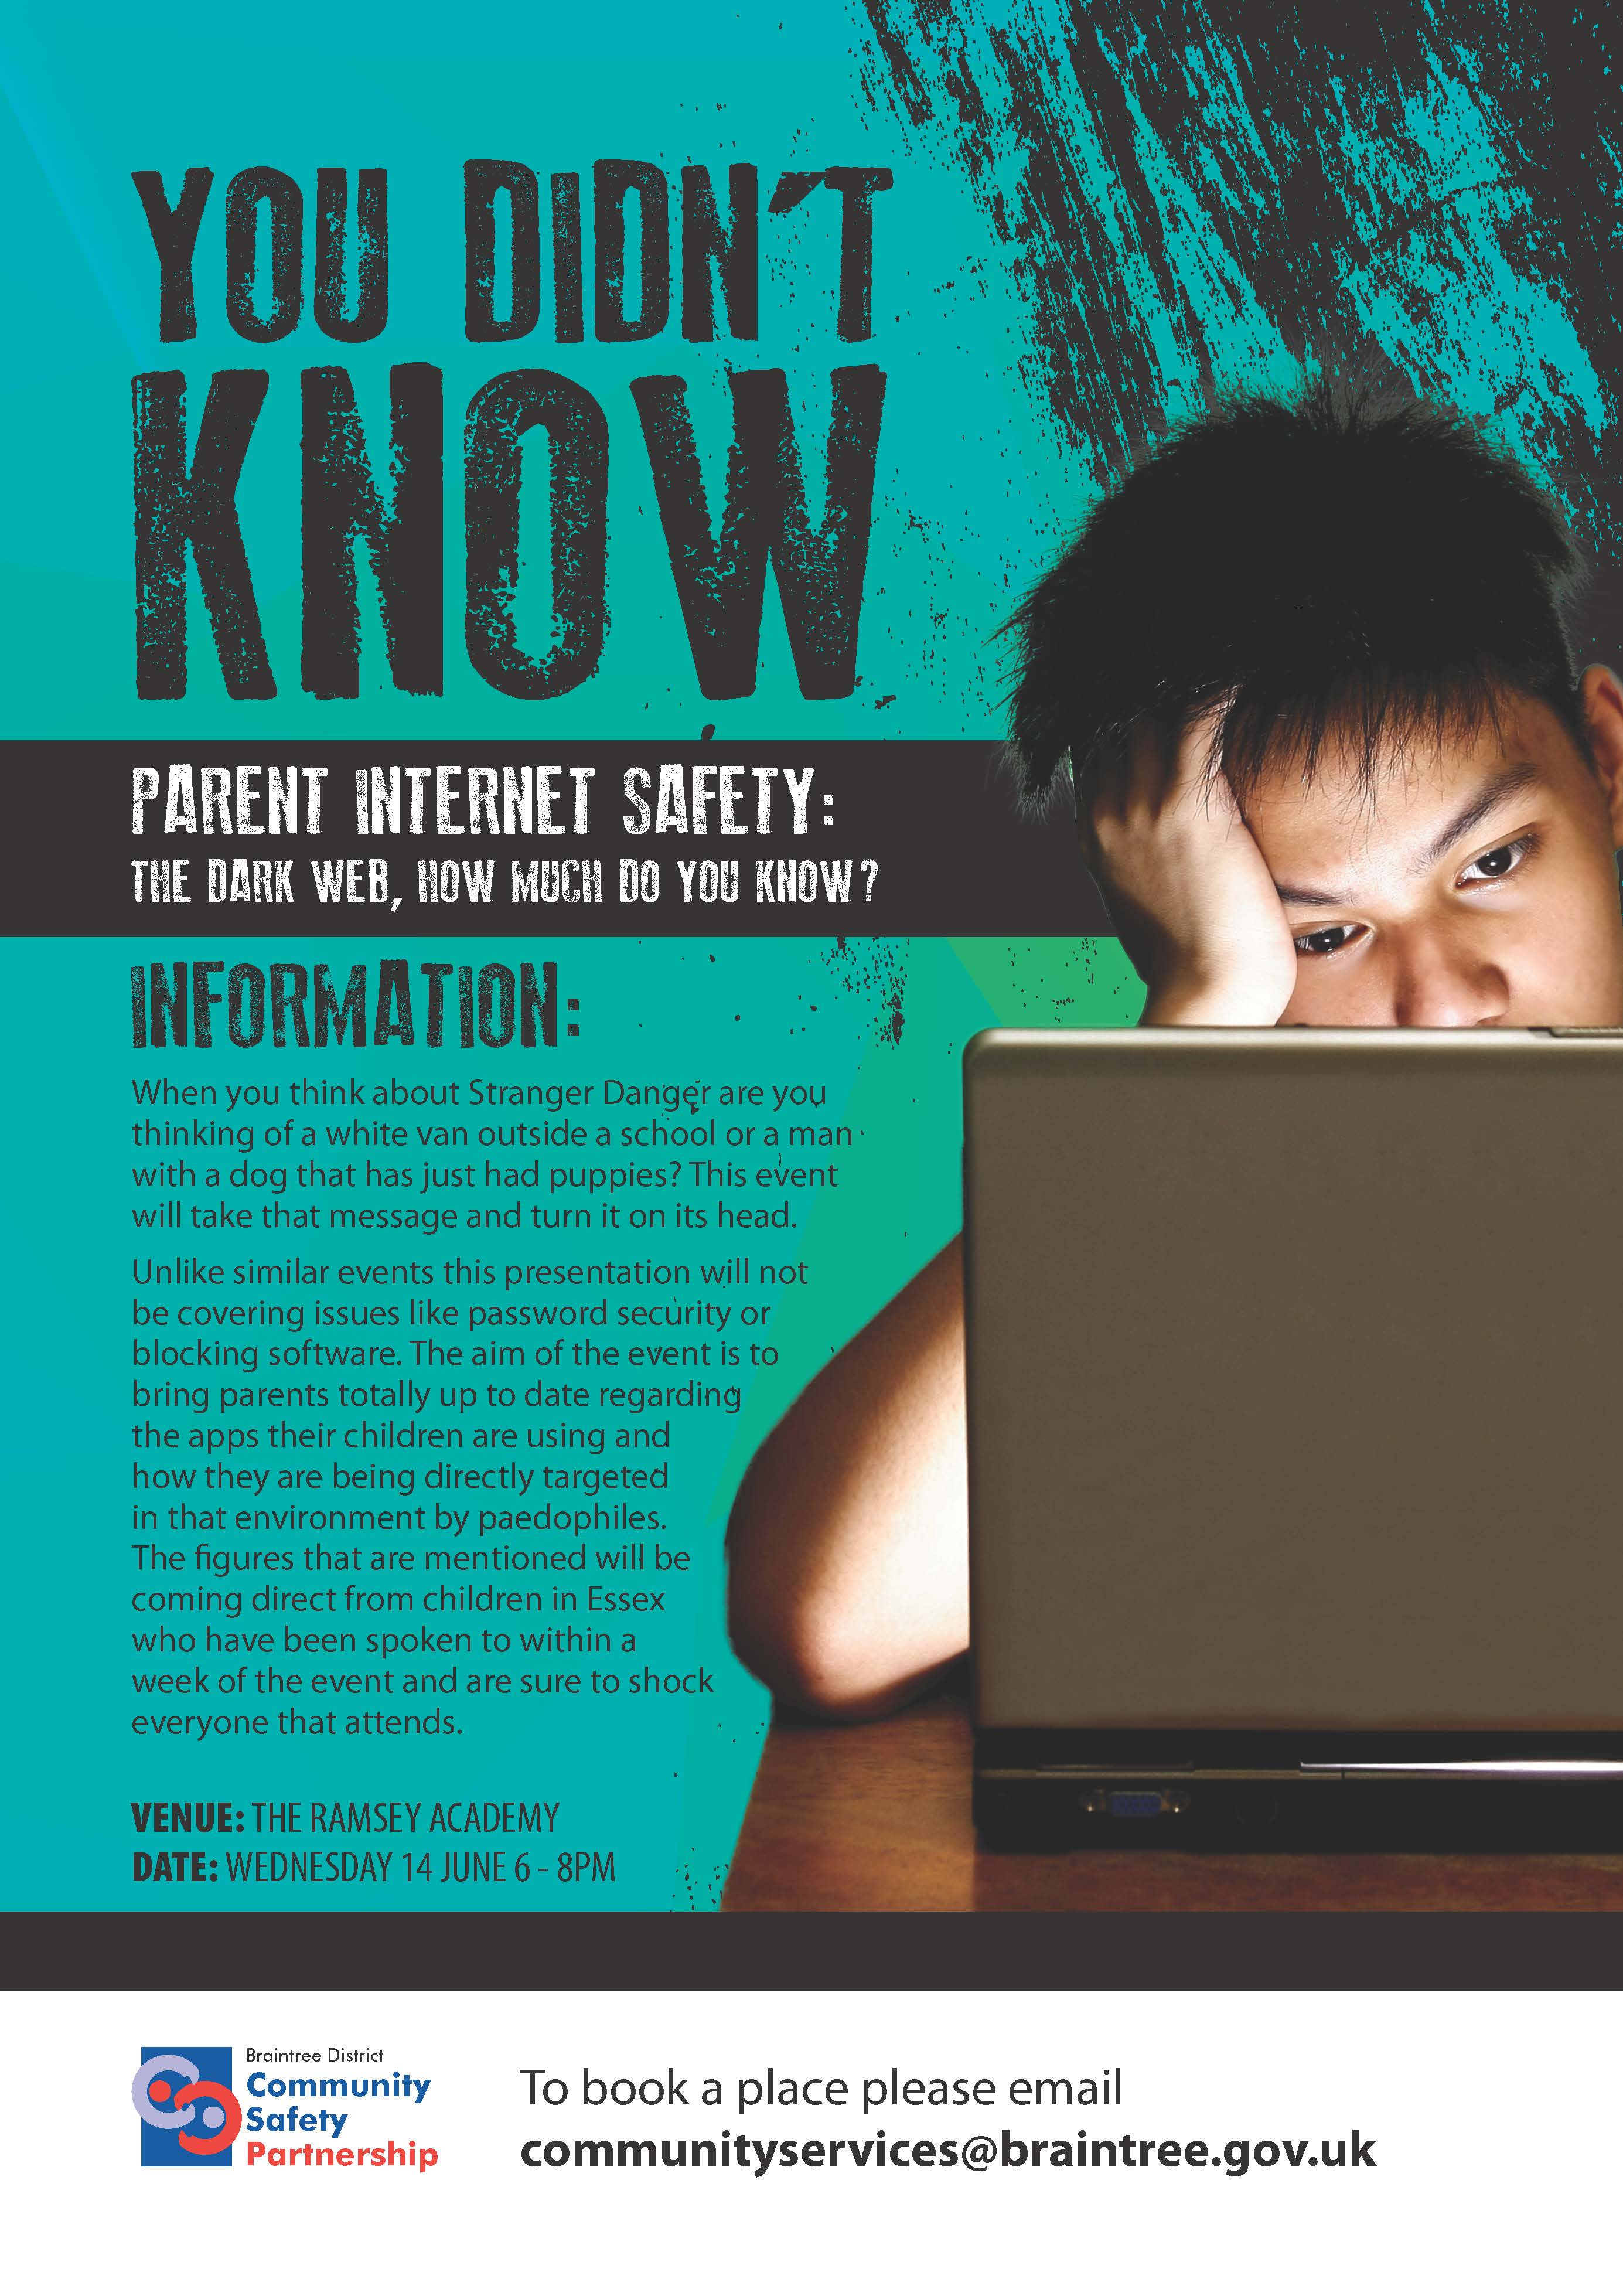 Social Media and Internet Safety Parents Workshop Wednesday 14 June 6pm - 8pm